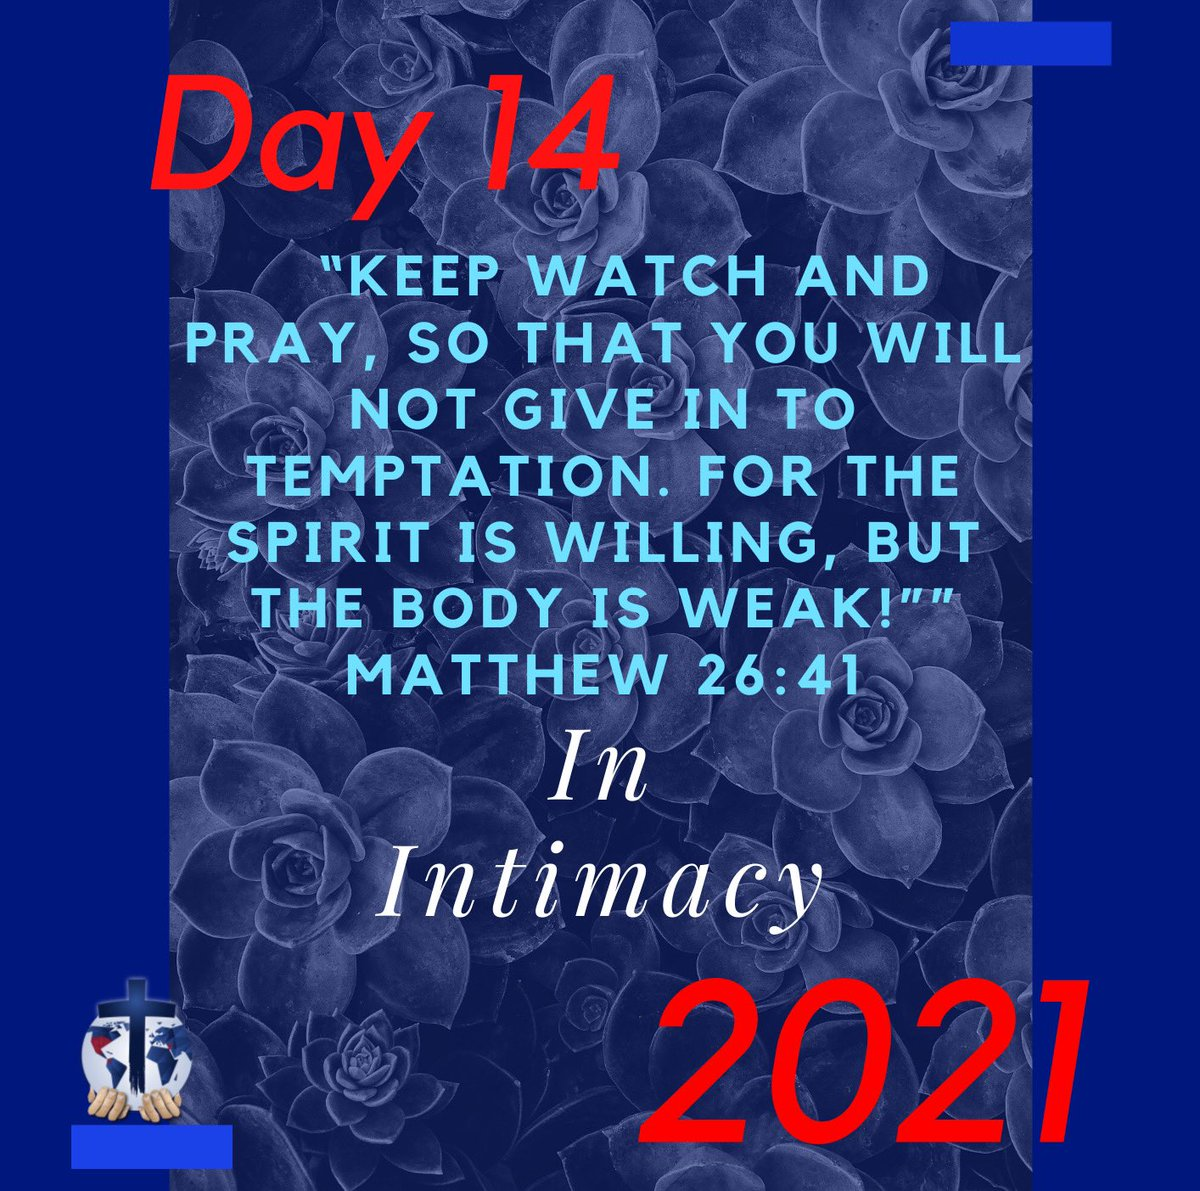 Intimacy = Be more like Jesus - He is Sufficient - Depend on Him = Fix your eyes on Jesus  #Day14 #Matthew26 #InIntimacy #Fasting2021